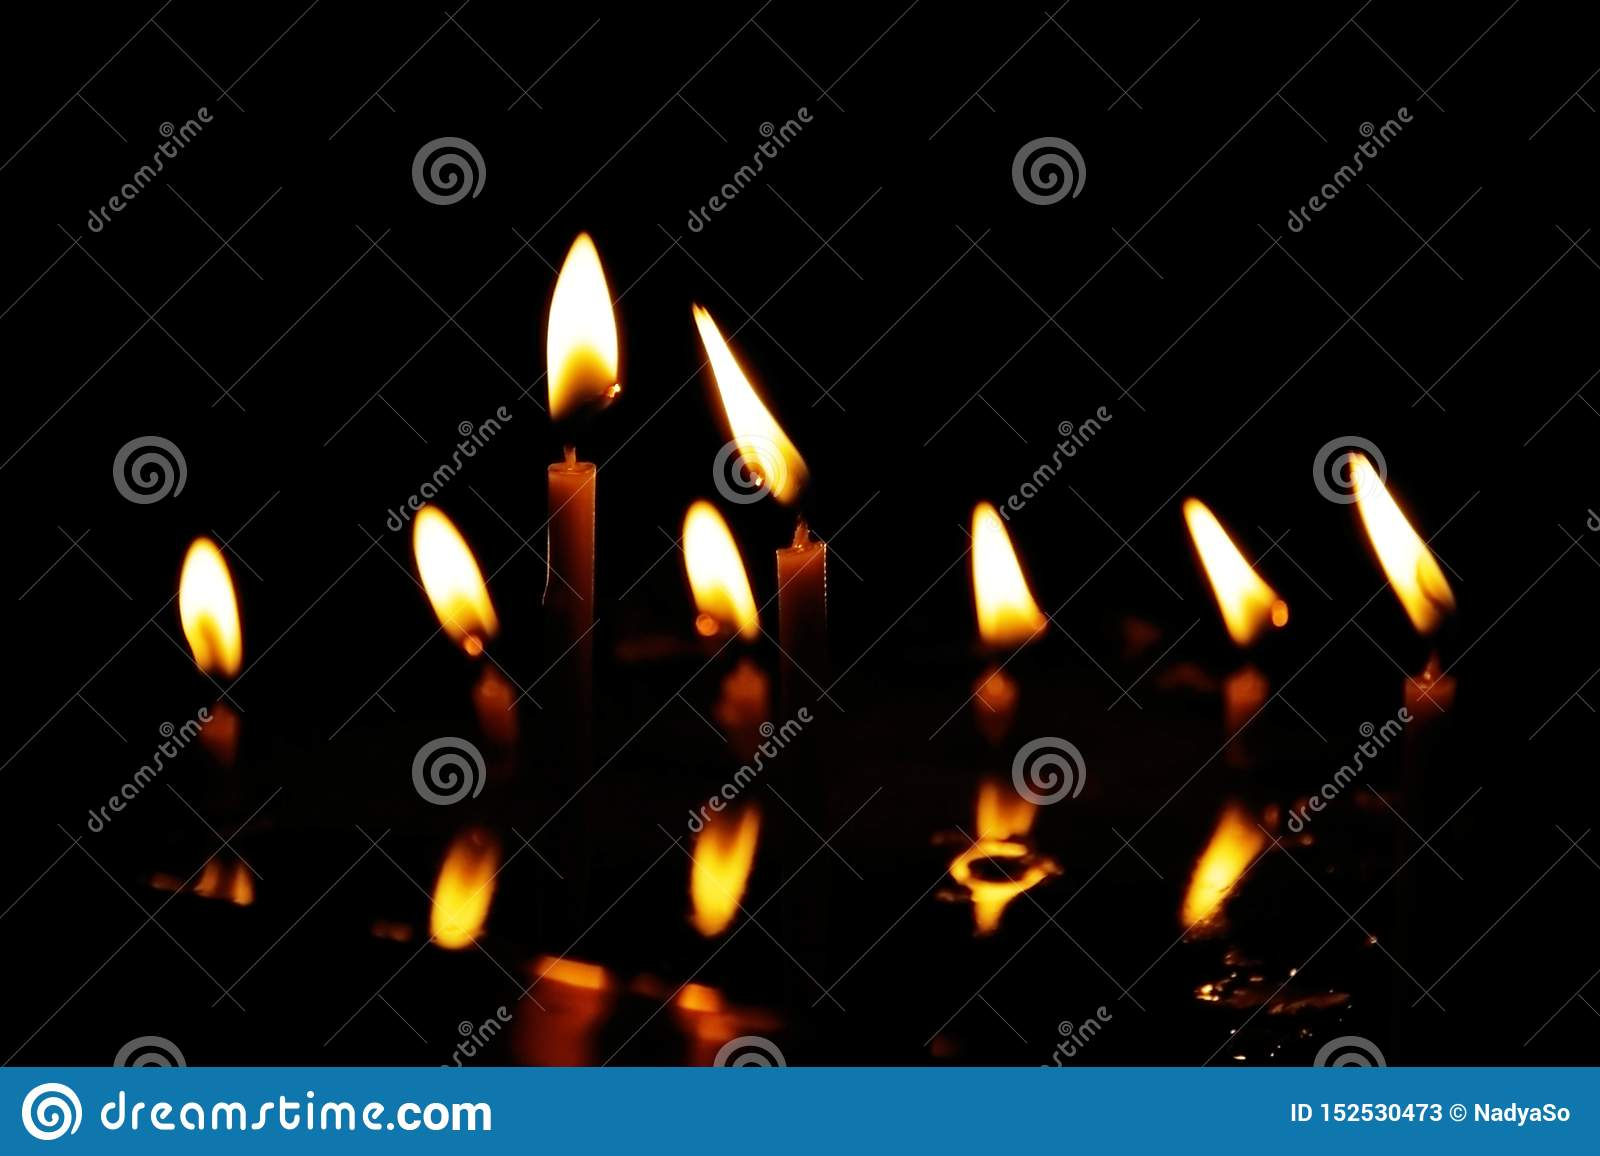 Prayer Candles Burning In Silent Darkness Of Temple